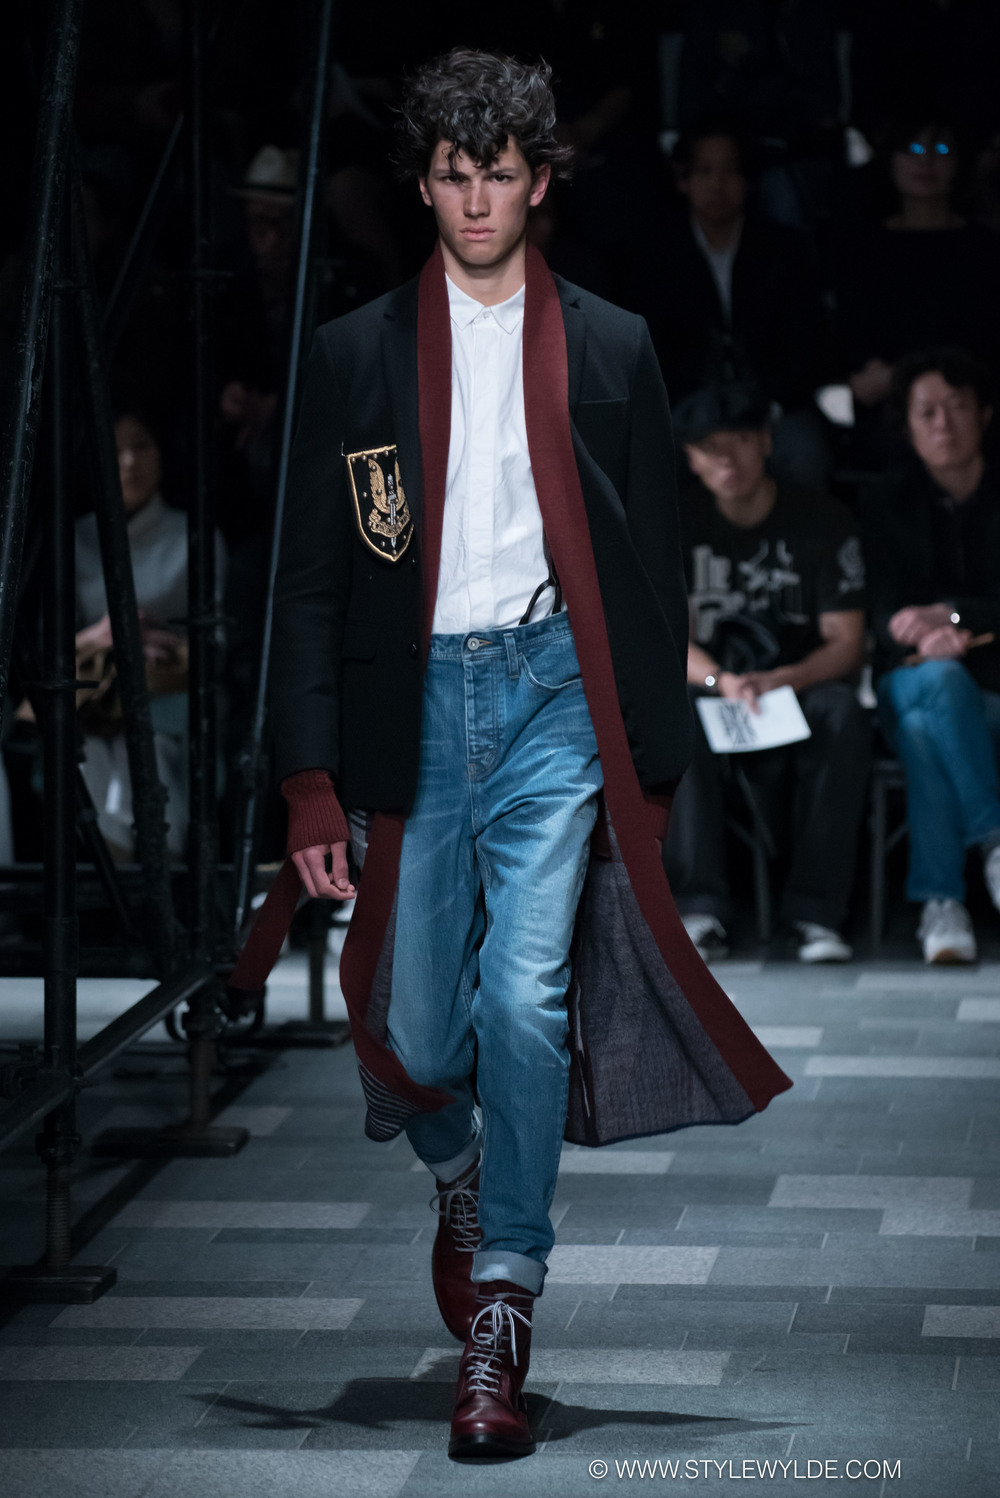 stylewylde_5351_pour_les_hommes_fw_2016-19.jpg